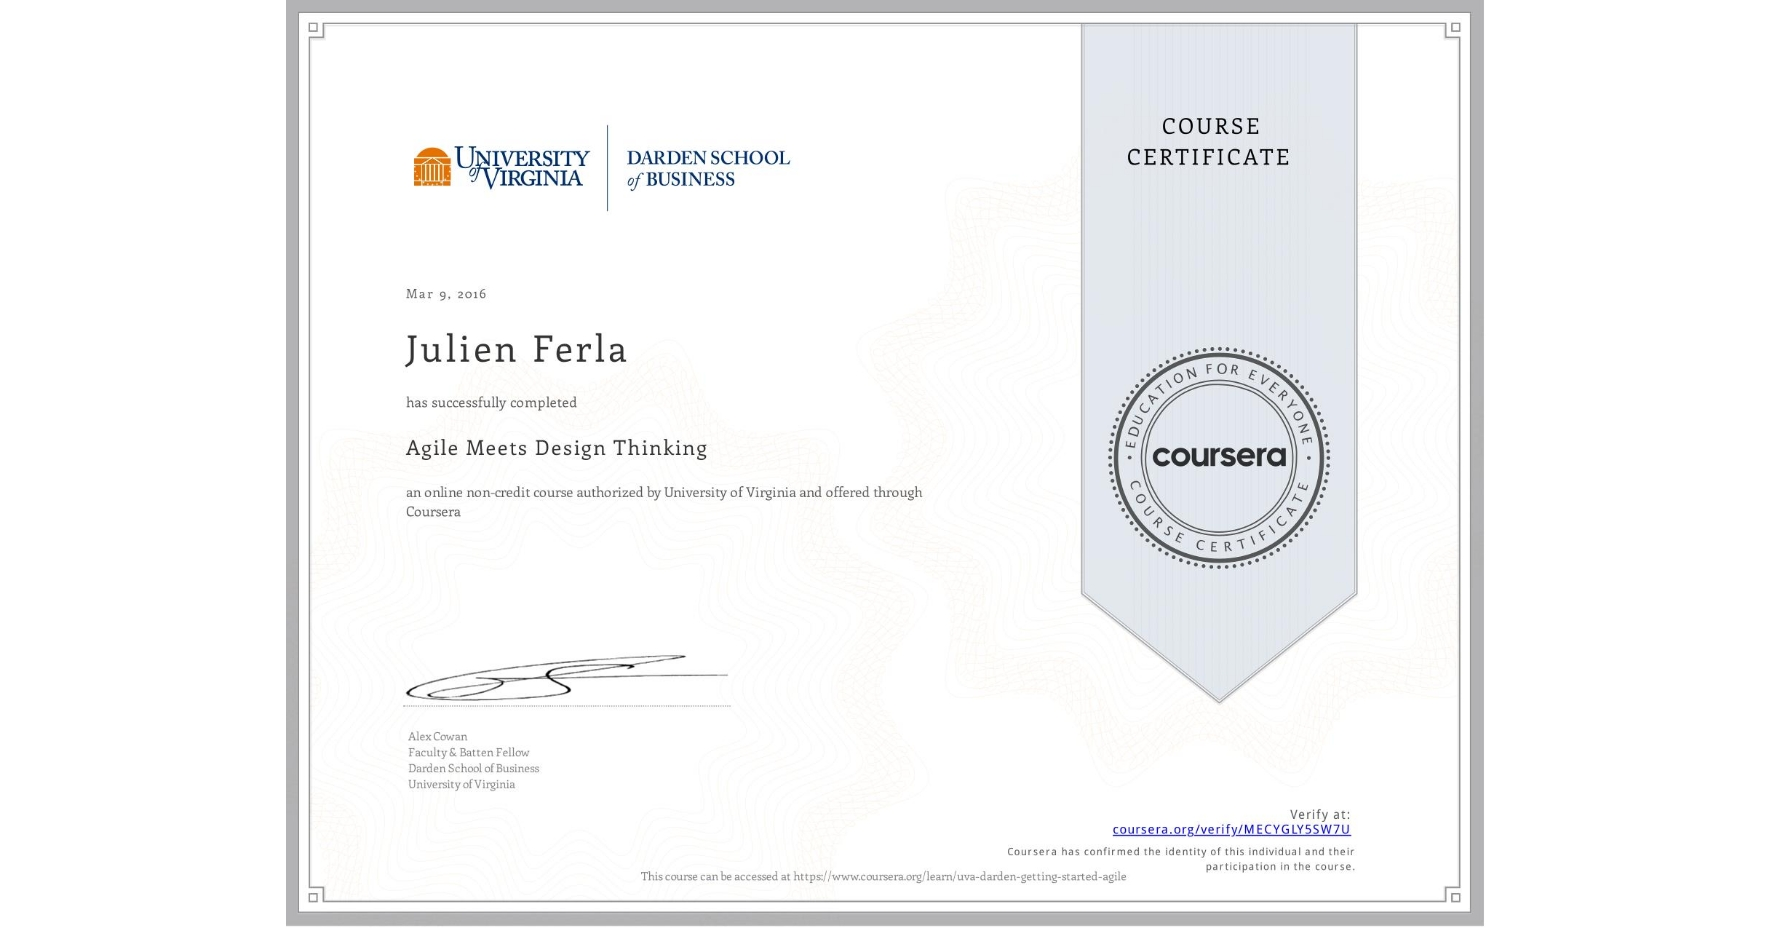 View certificate for Julien Ferla, Agile Meets Design Thinking, an online non-credit course authorized by University of Virginia and offered through Coursera